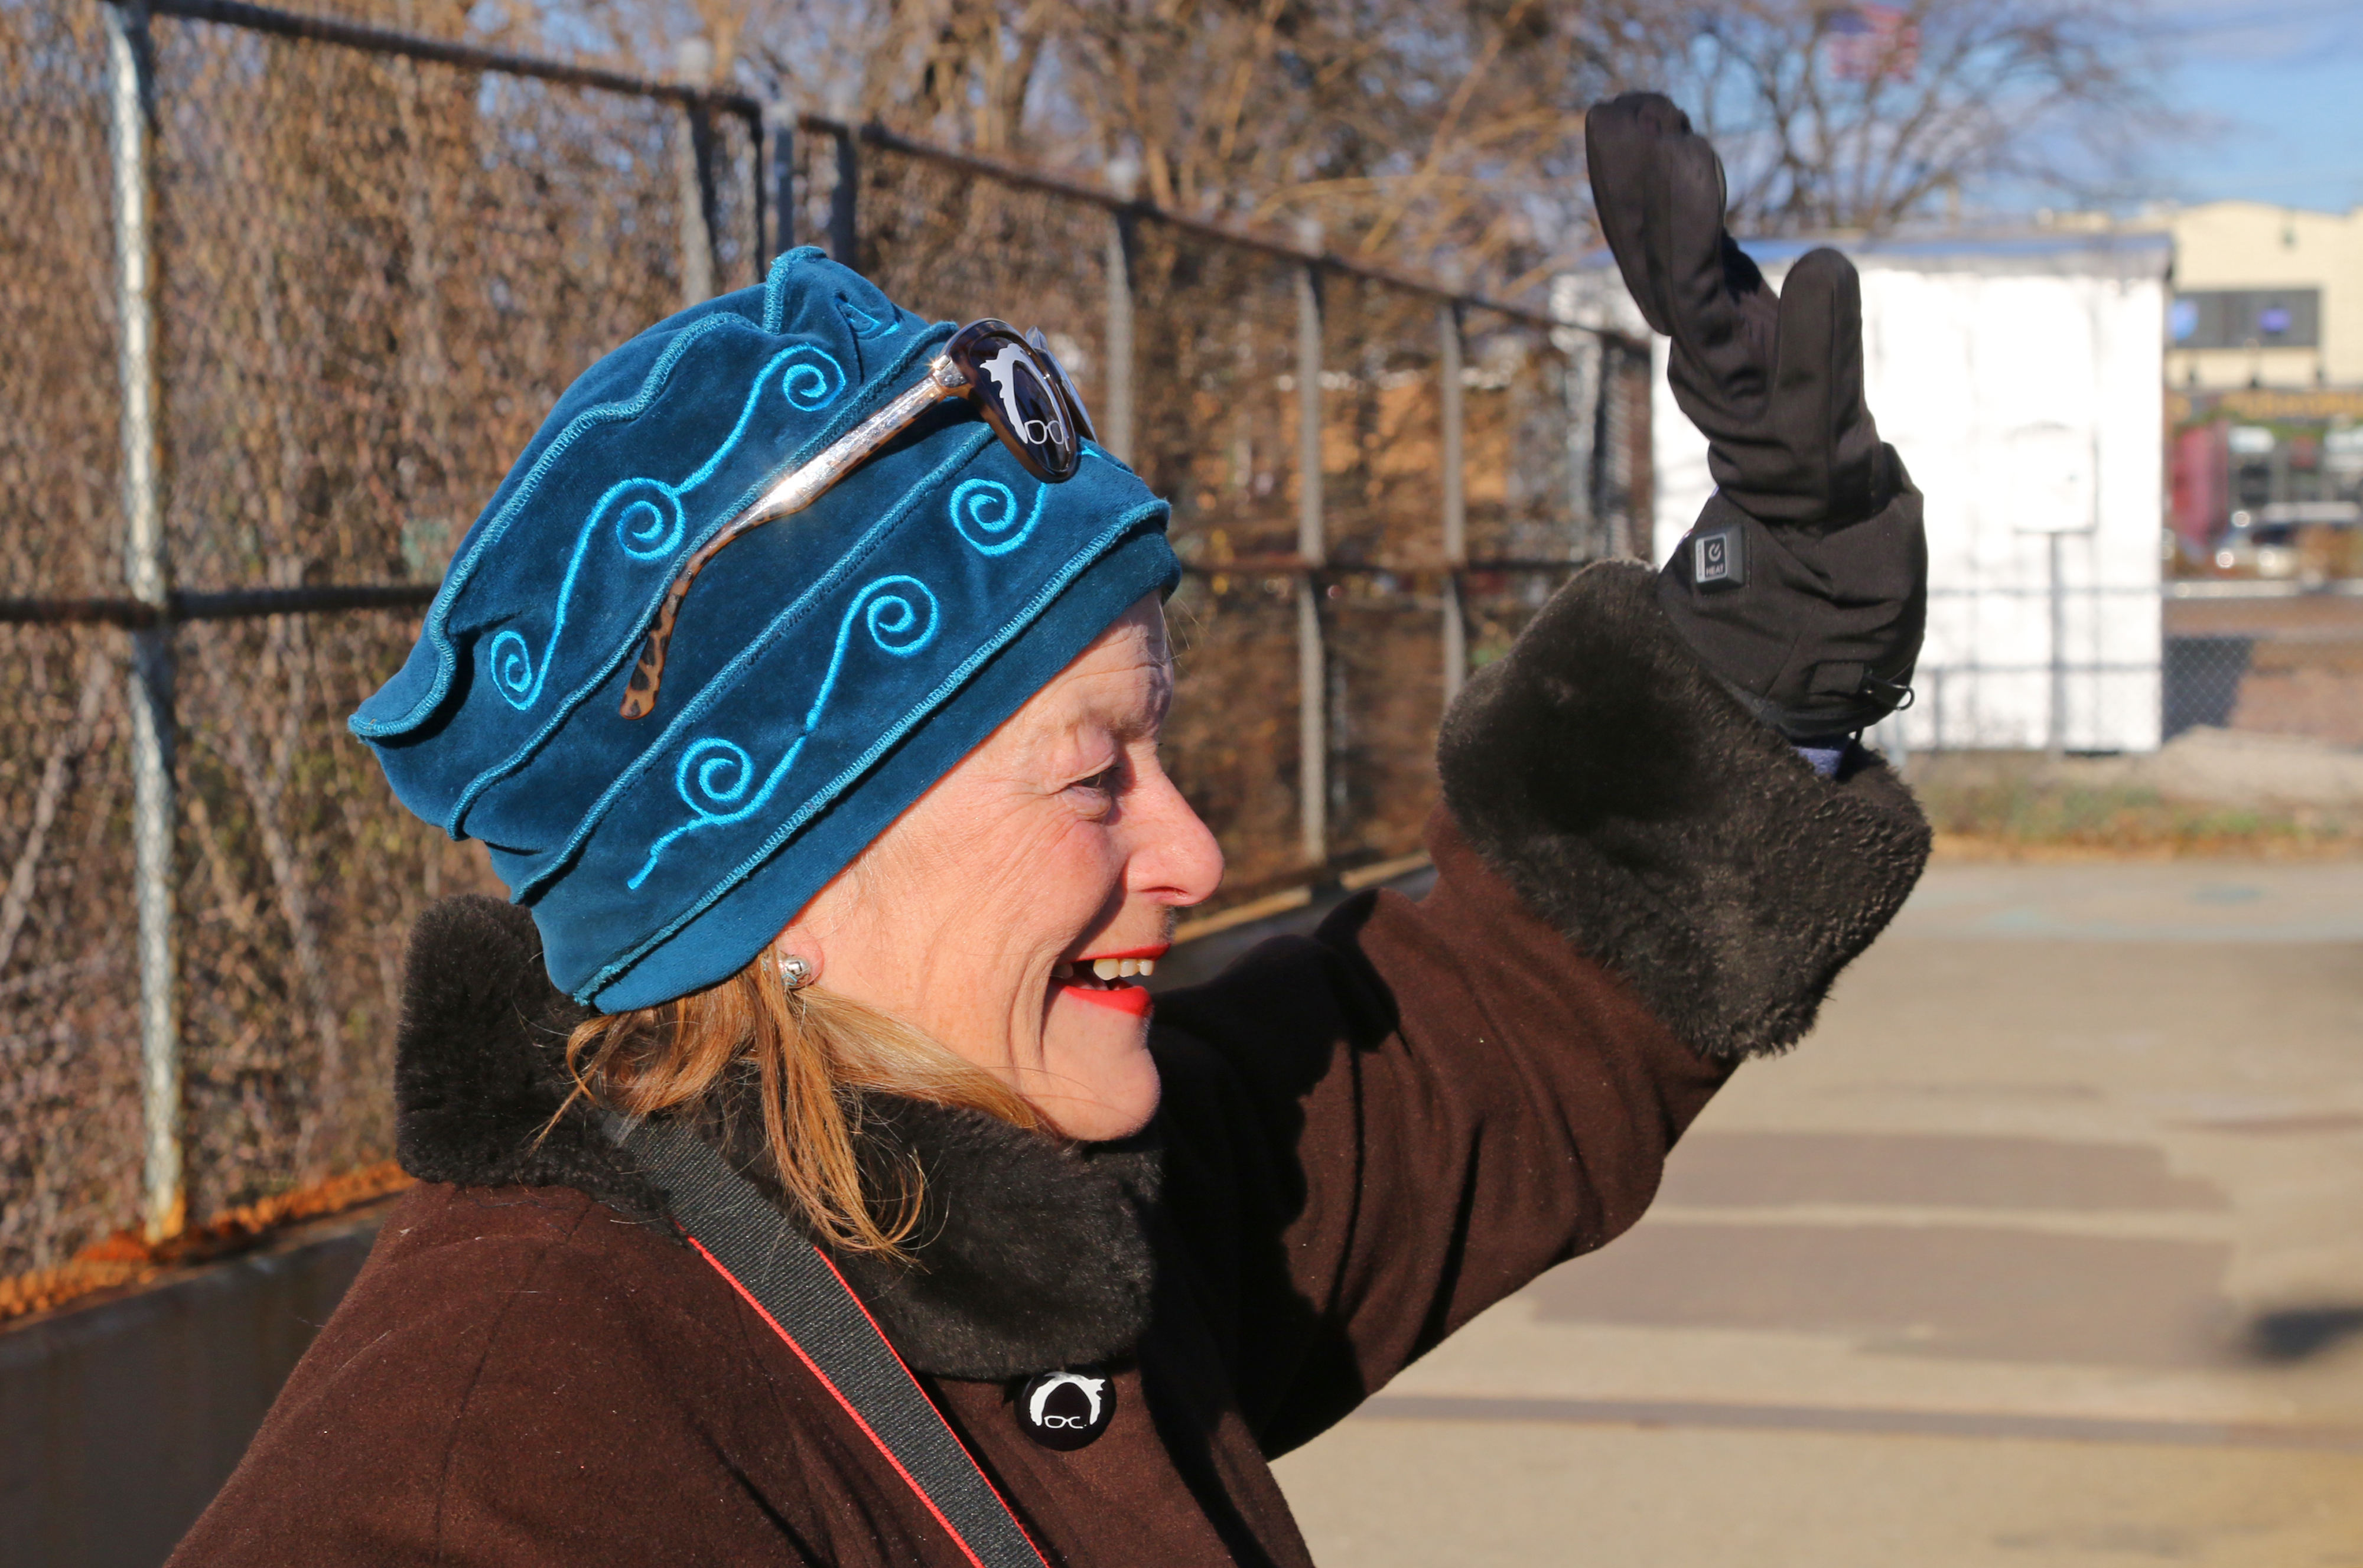 Veronica Wolski waves to drivers as she protests with banners on a Kennedy expressway pedestrian bridge in 2017.